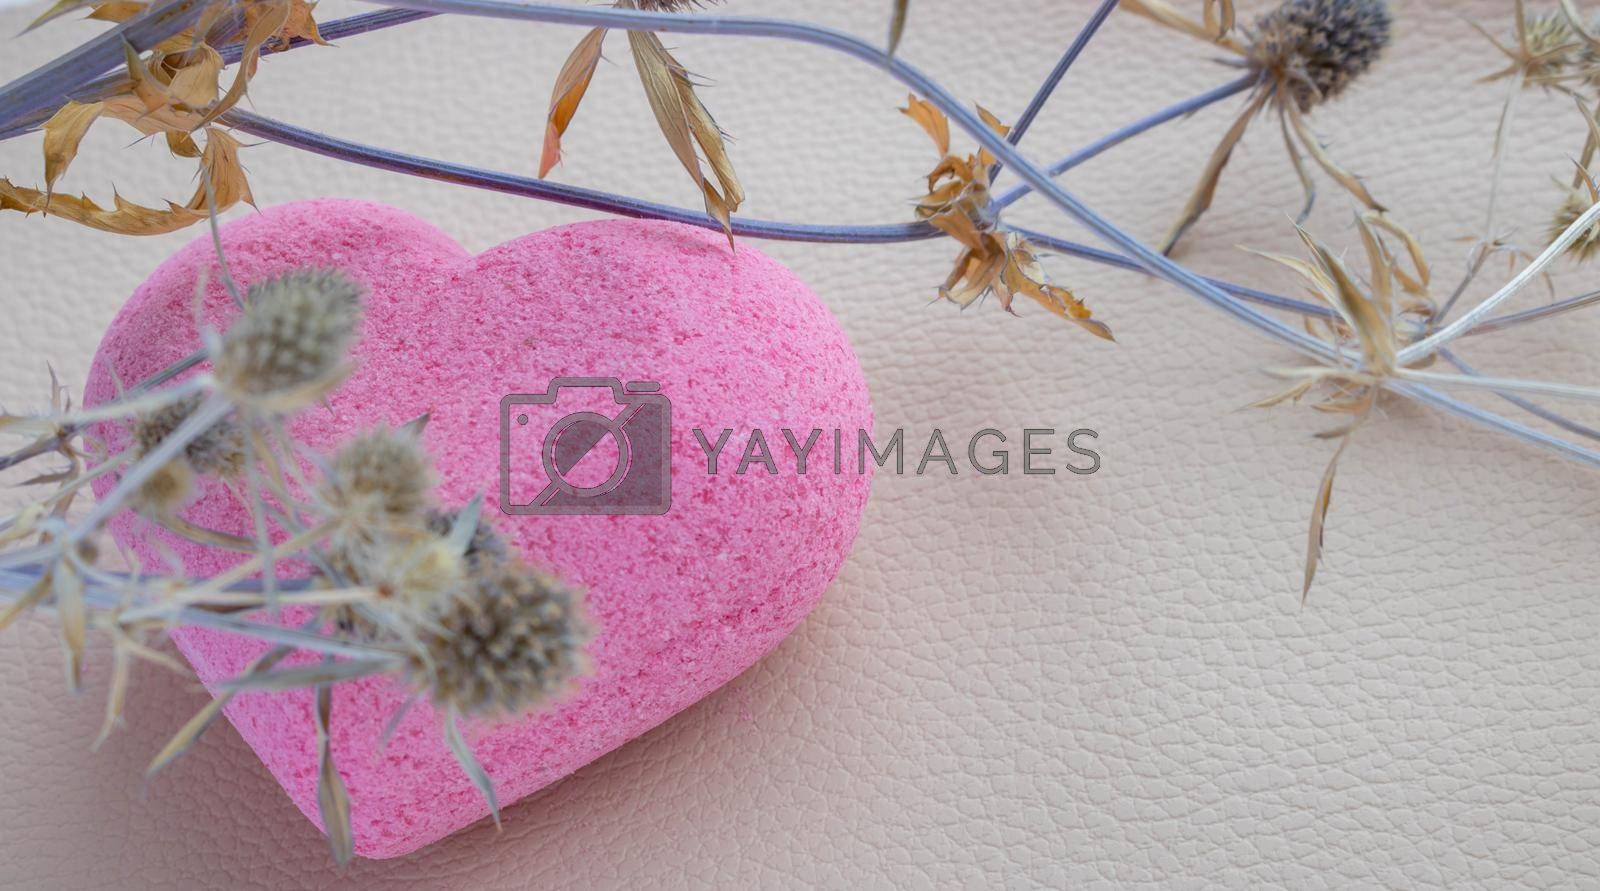 Purple heart bath salt and a dry branch on a beige background. Space for text.